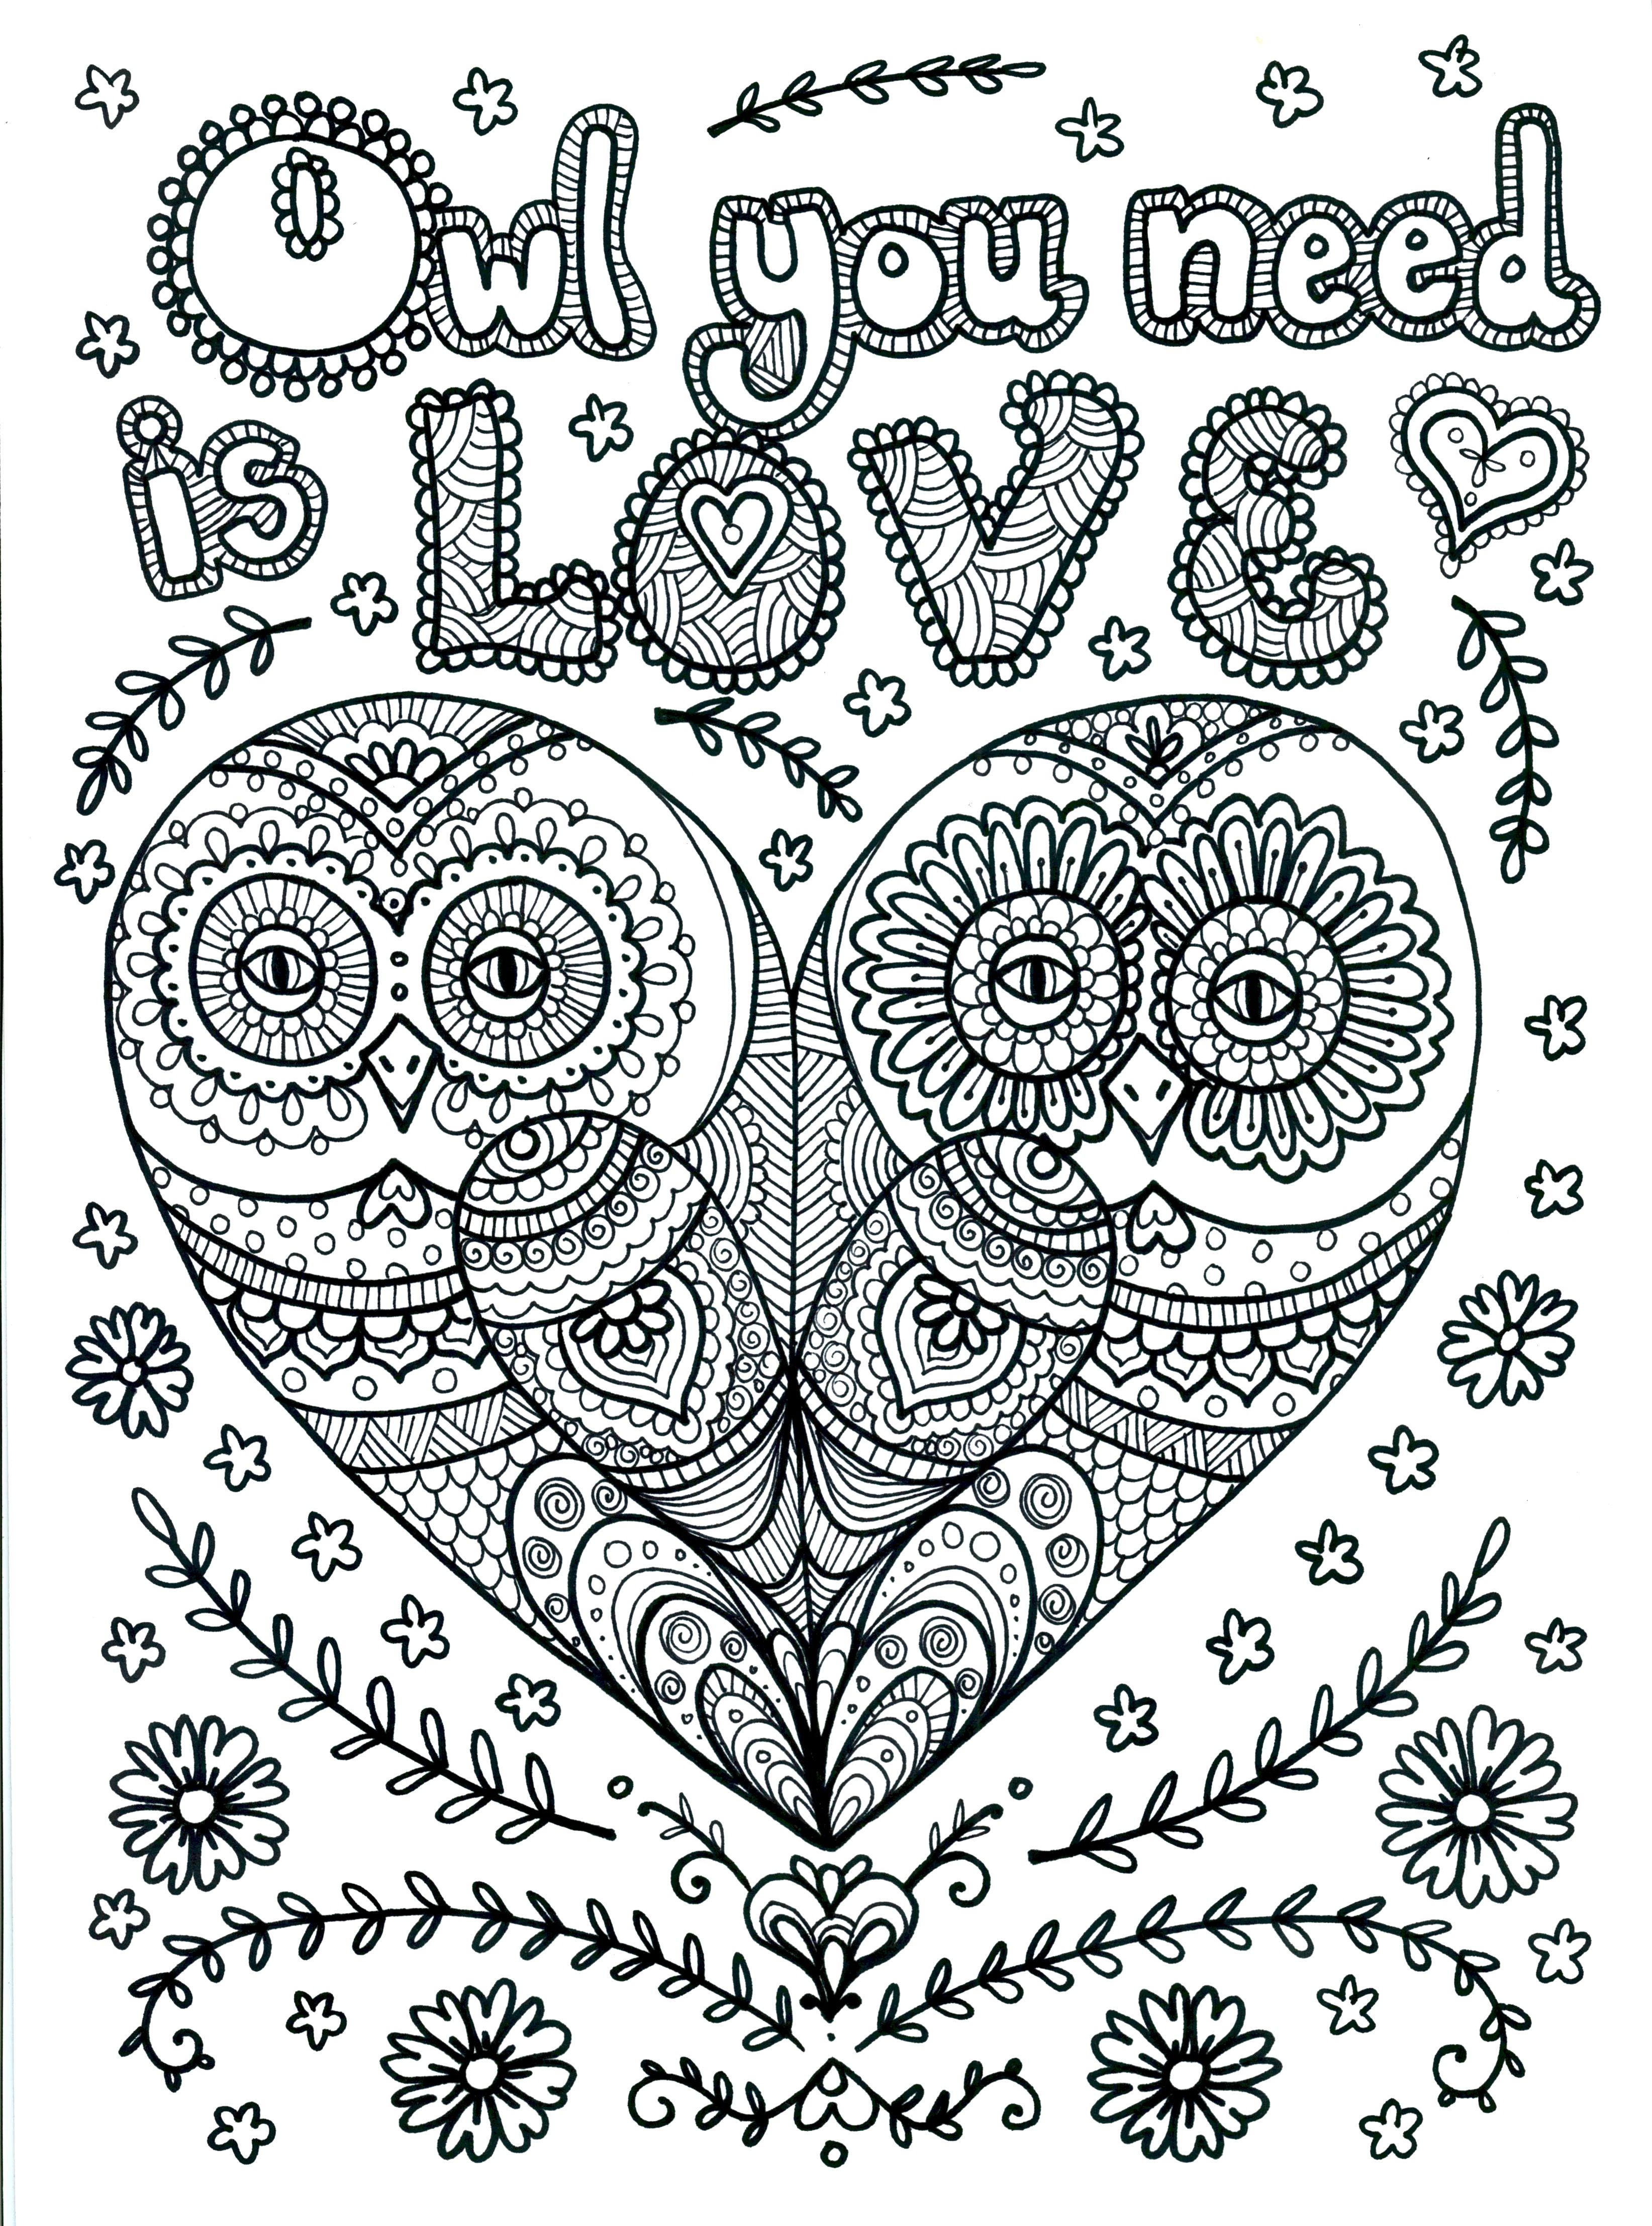 Pin by Amber Lynn on coloring pages | Pinterest | Adult coloring ...